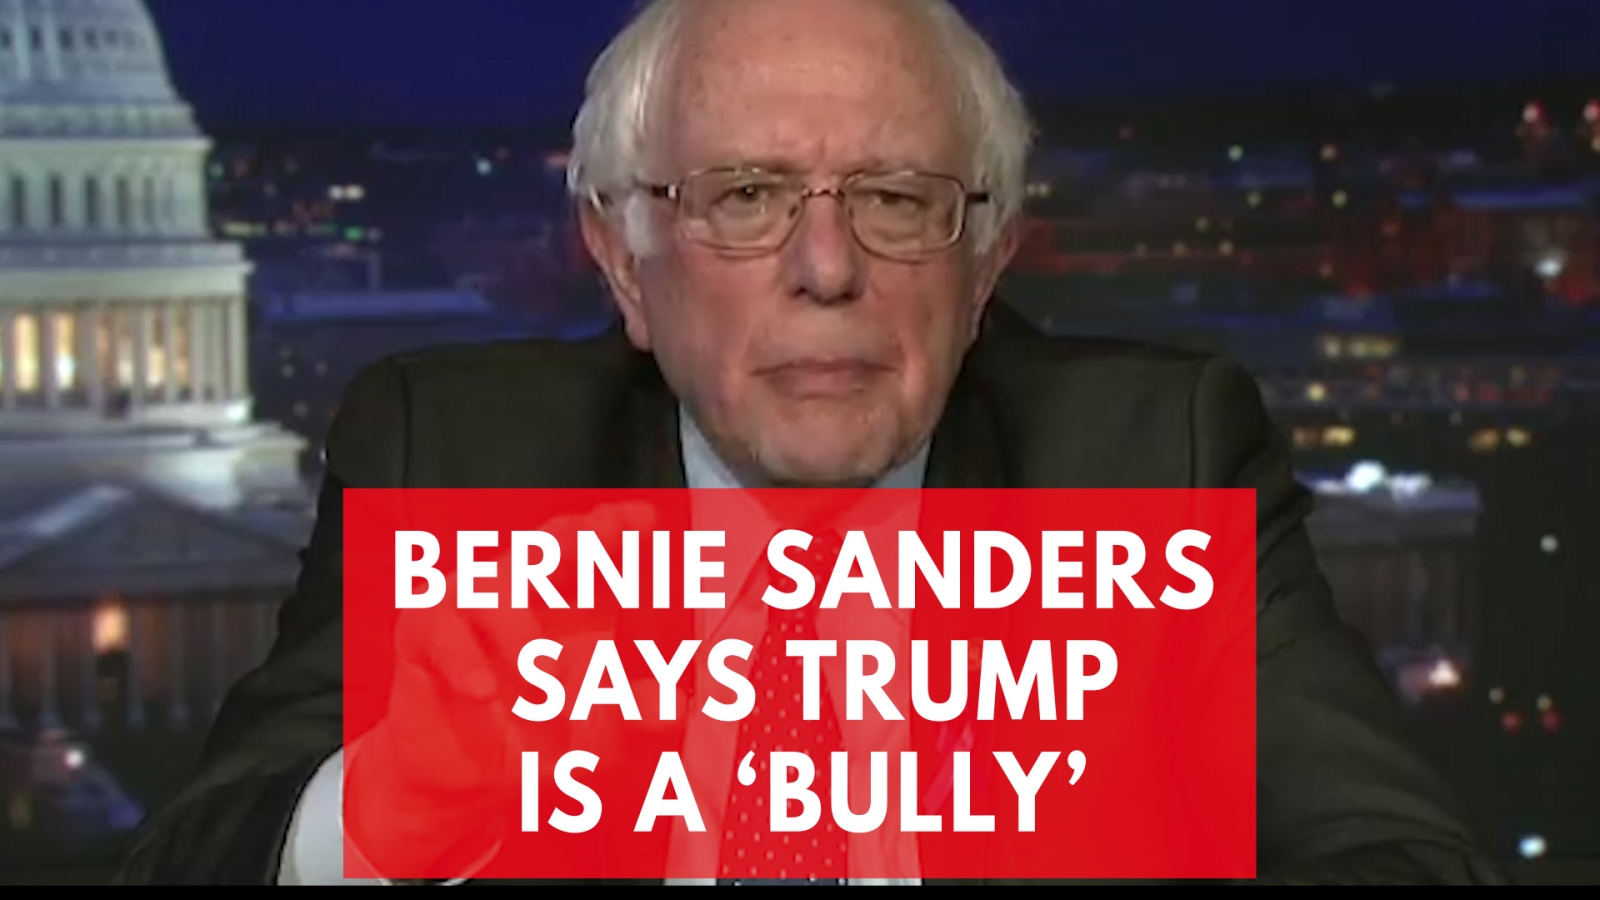 bernie-sanders-says-trump-is-a-bully-after-the-state-of-the-union